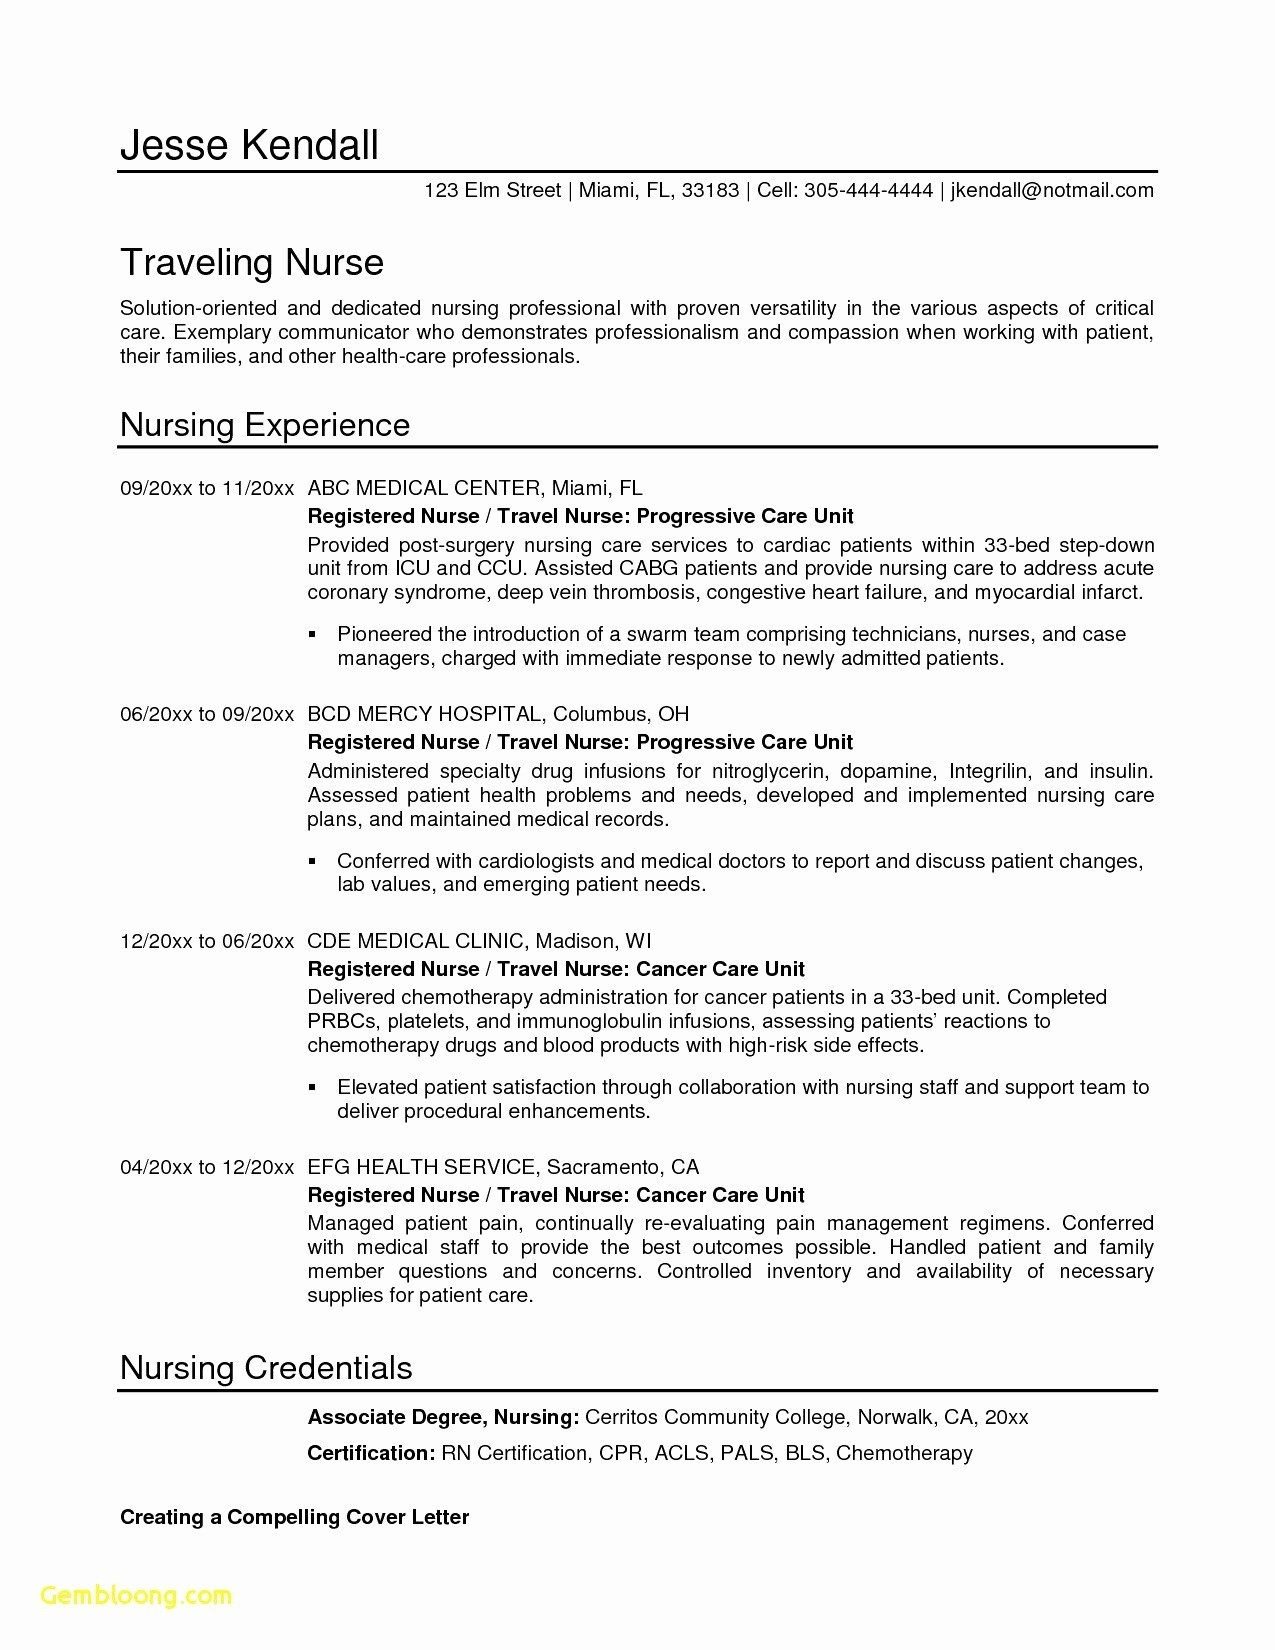 Medical School Application Resume - Objectives to Put A Resume Fresh Best Sample College Application